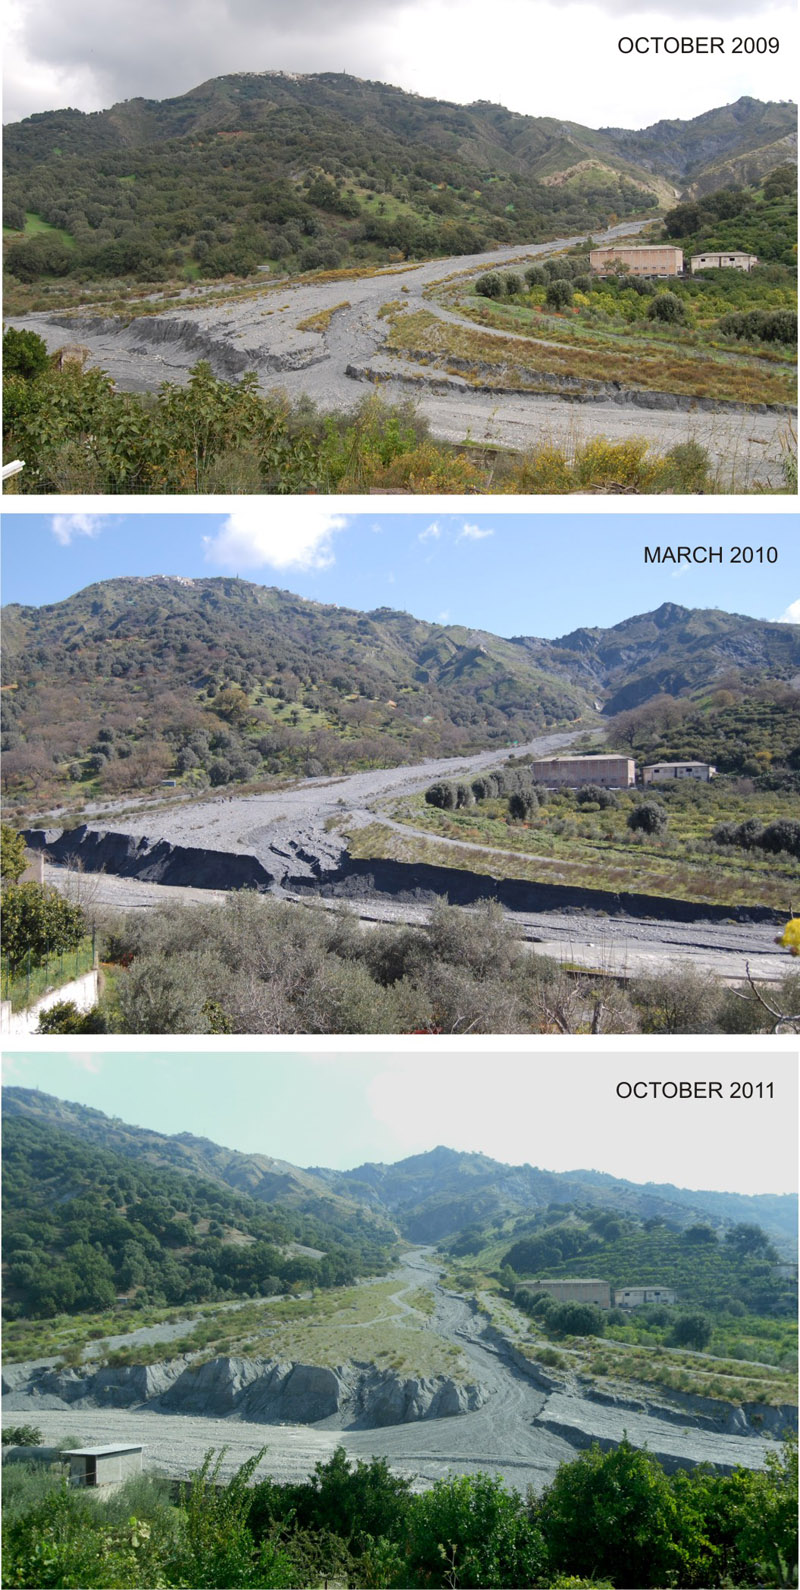 Photo comparison (from October 2009 to October 2011) of the active Inerà alluvial fan, located near the village of San Lorenzo at the confluence of T. Inerà with the Fiumara di Mèlito (souther Calabria). It should be noted that, within one winter season, the fan displays a significant alternation in the progradation/retrogradation process.